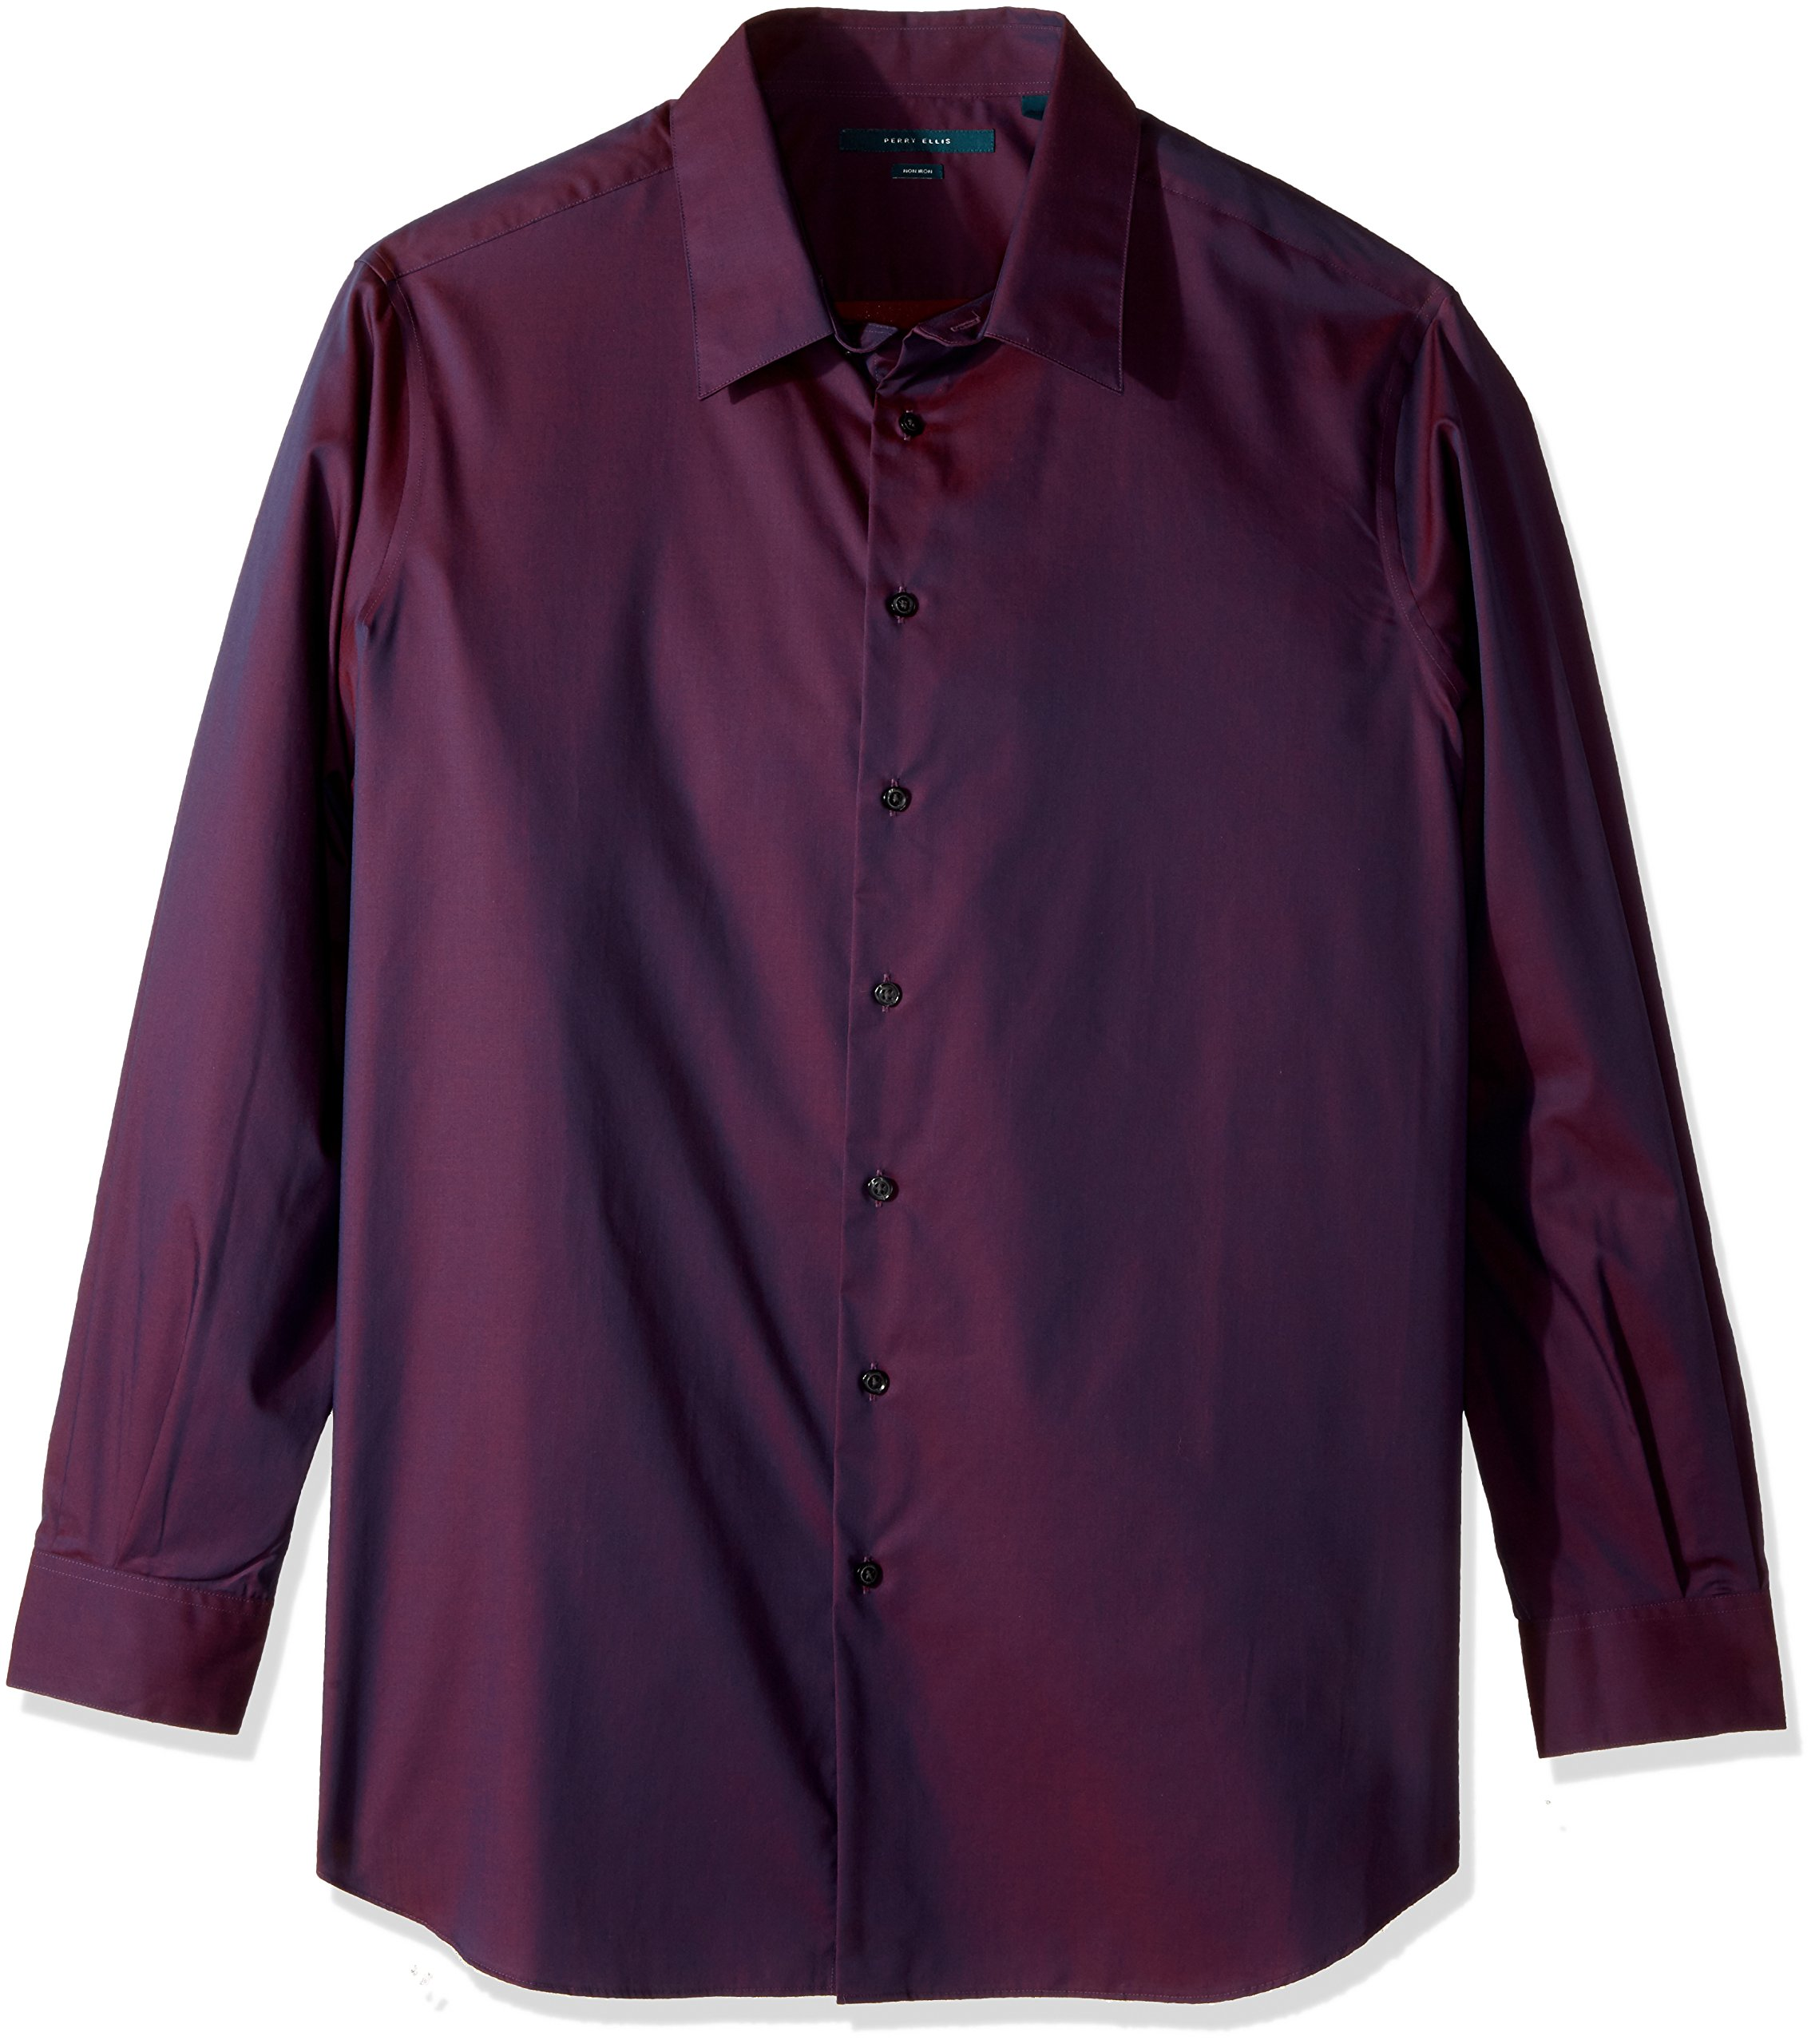 Perry Ellis Men's Big Travel Luxe Solid Non-Iron Twill Shirt, Midnight Plum-4CFW4600, 2XL Tall